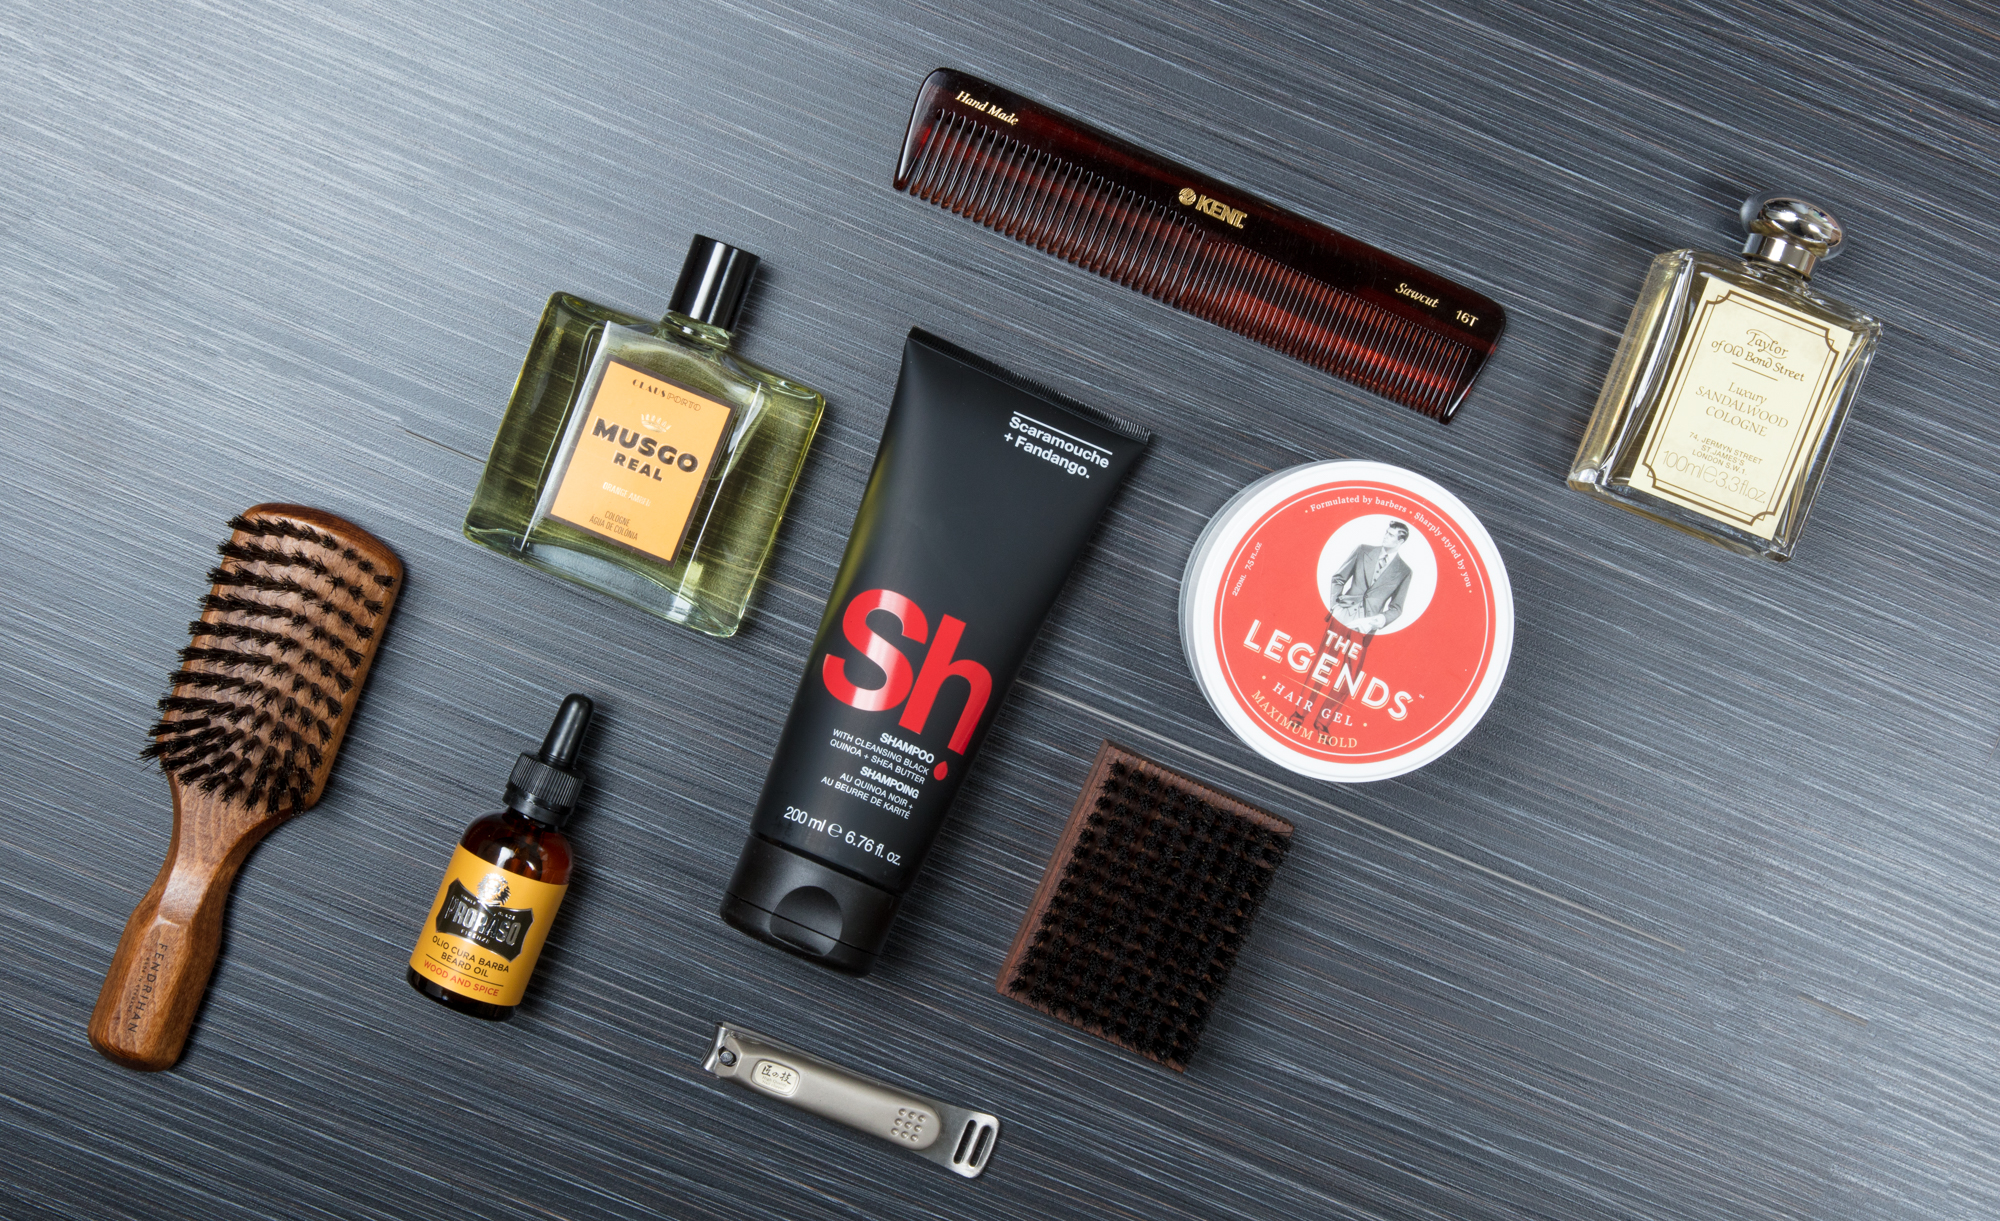 Harry's vs Dollar Shave Club, and More: Which Shaving Club Subscription is Best?